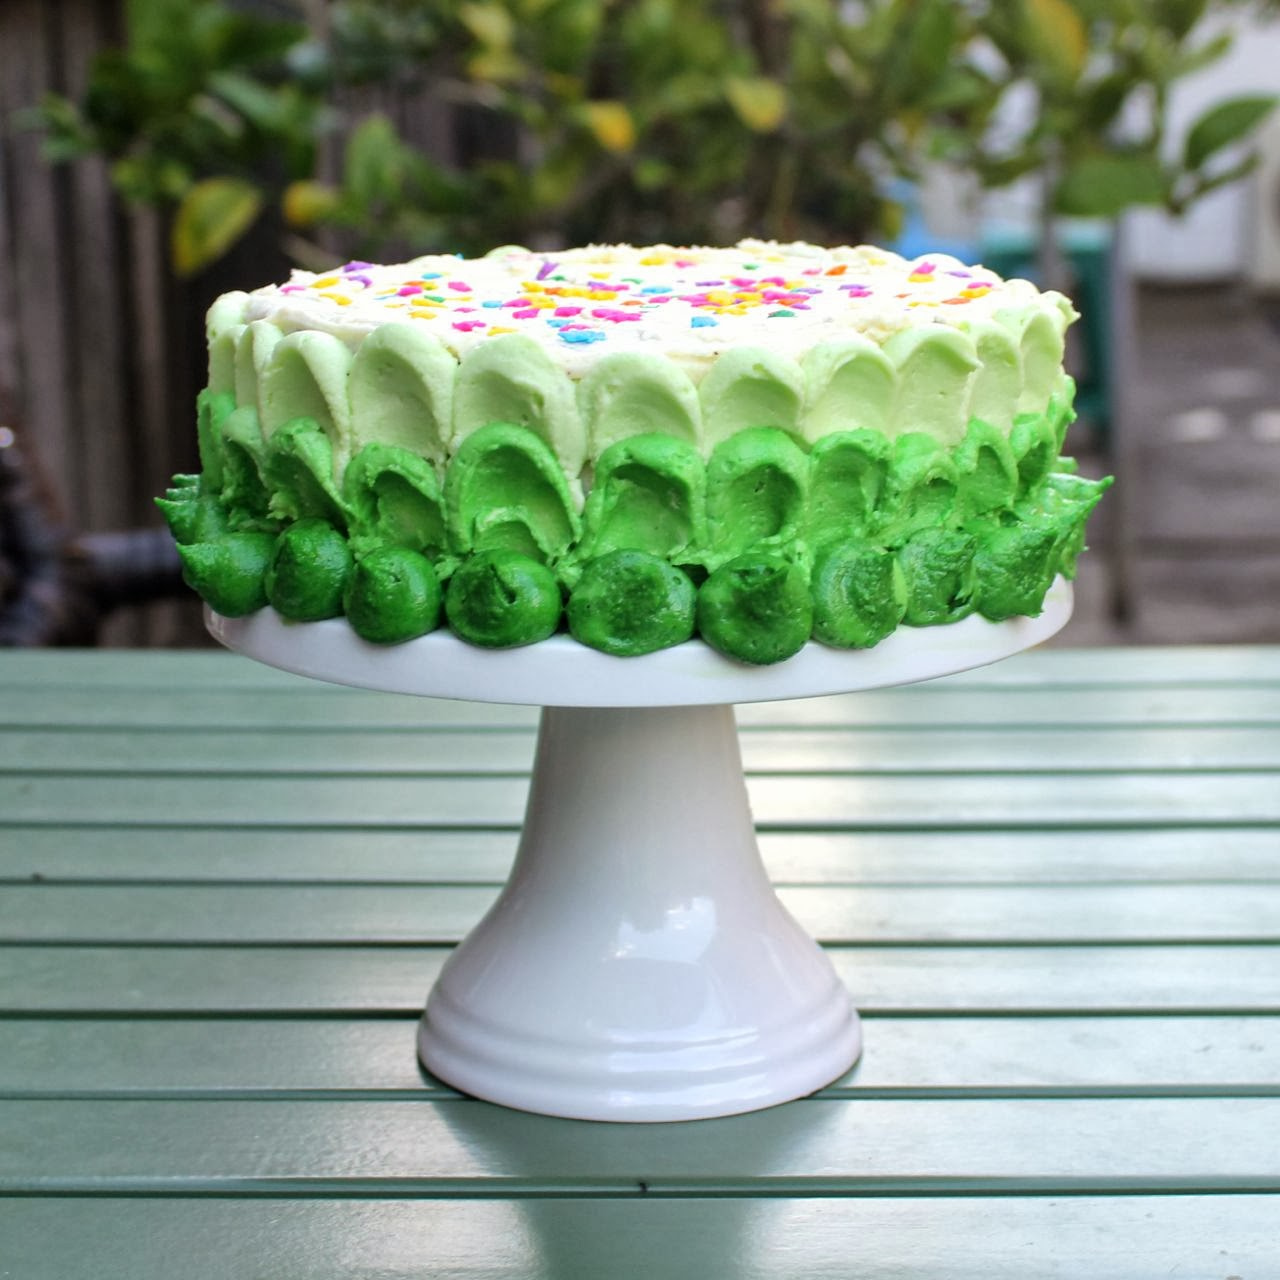 Green Gourmet Giraffe Ultimate Chocolate Cake With Green Ombre Frosting